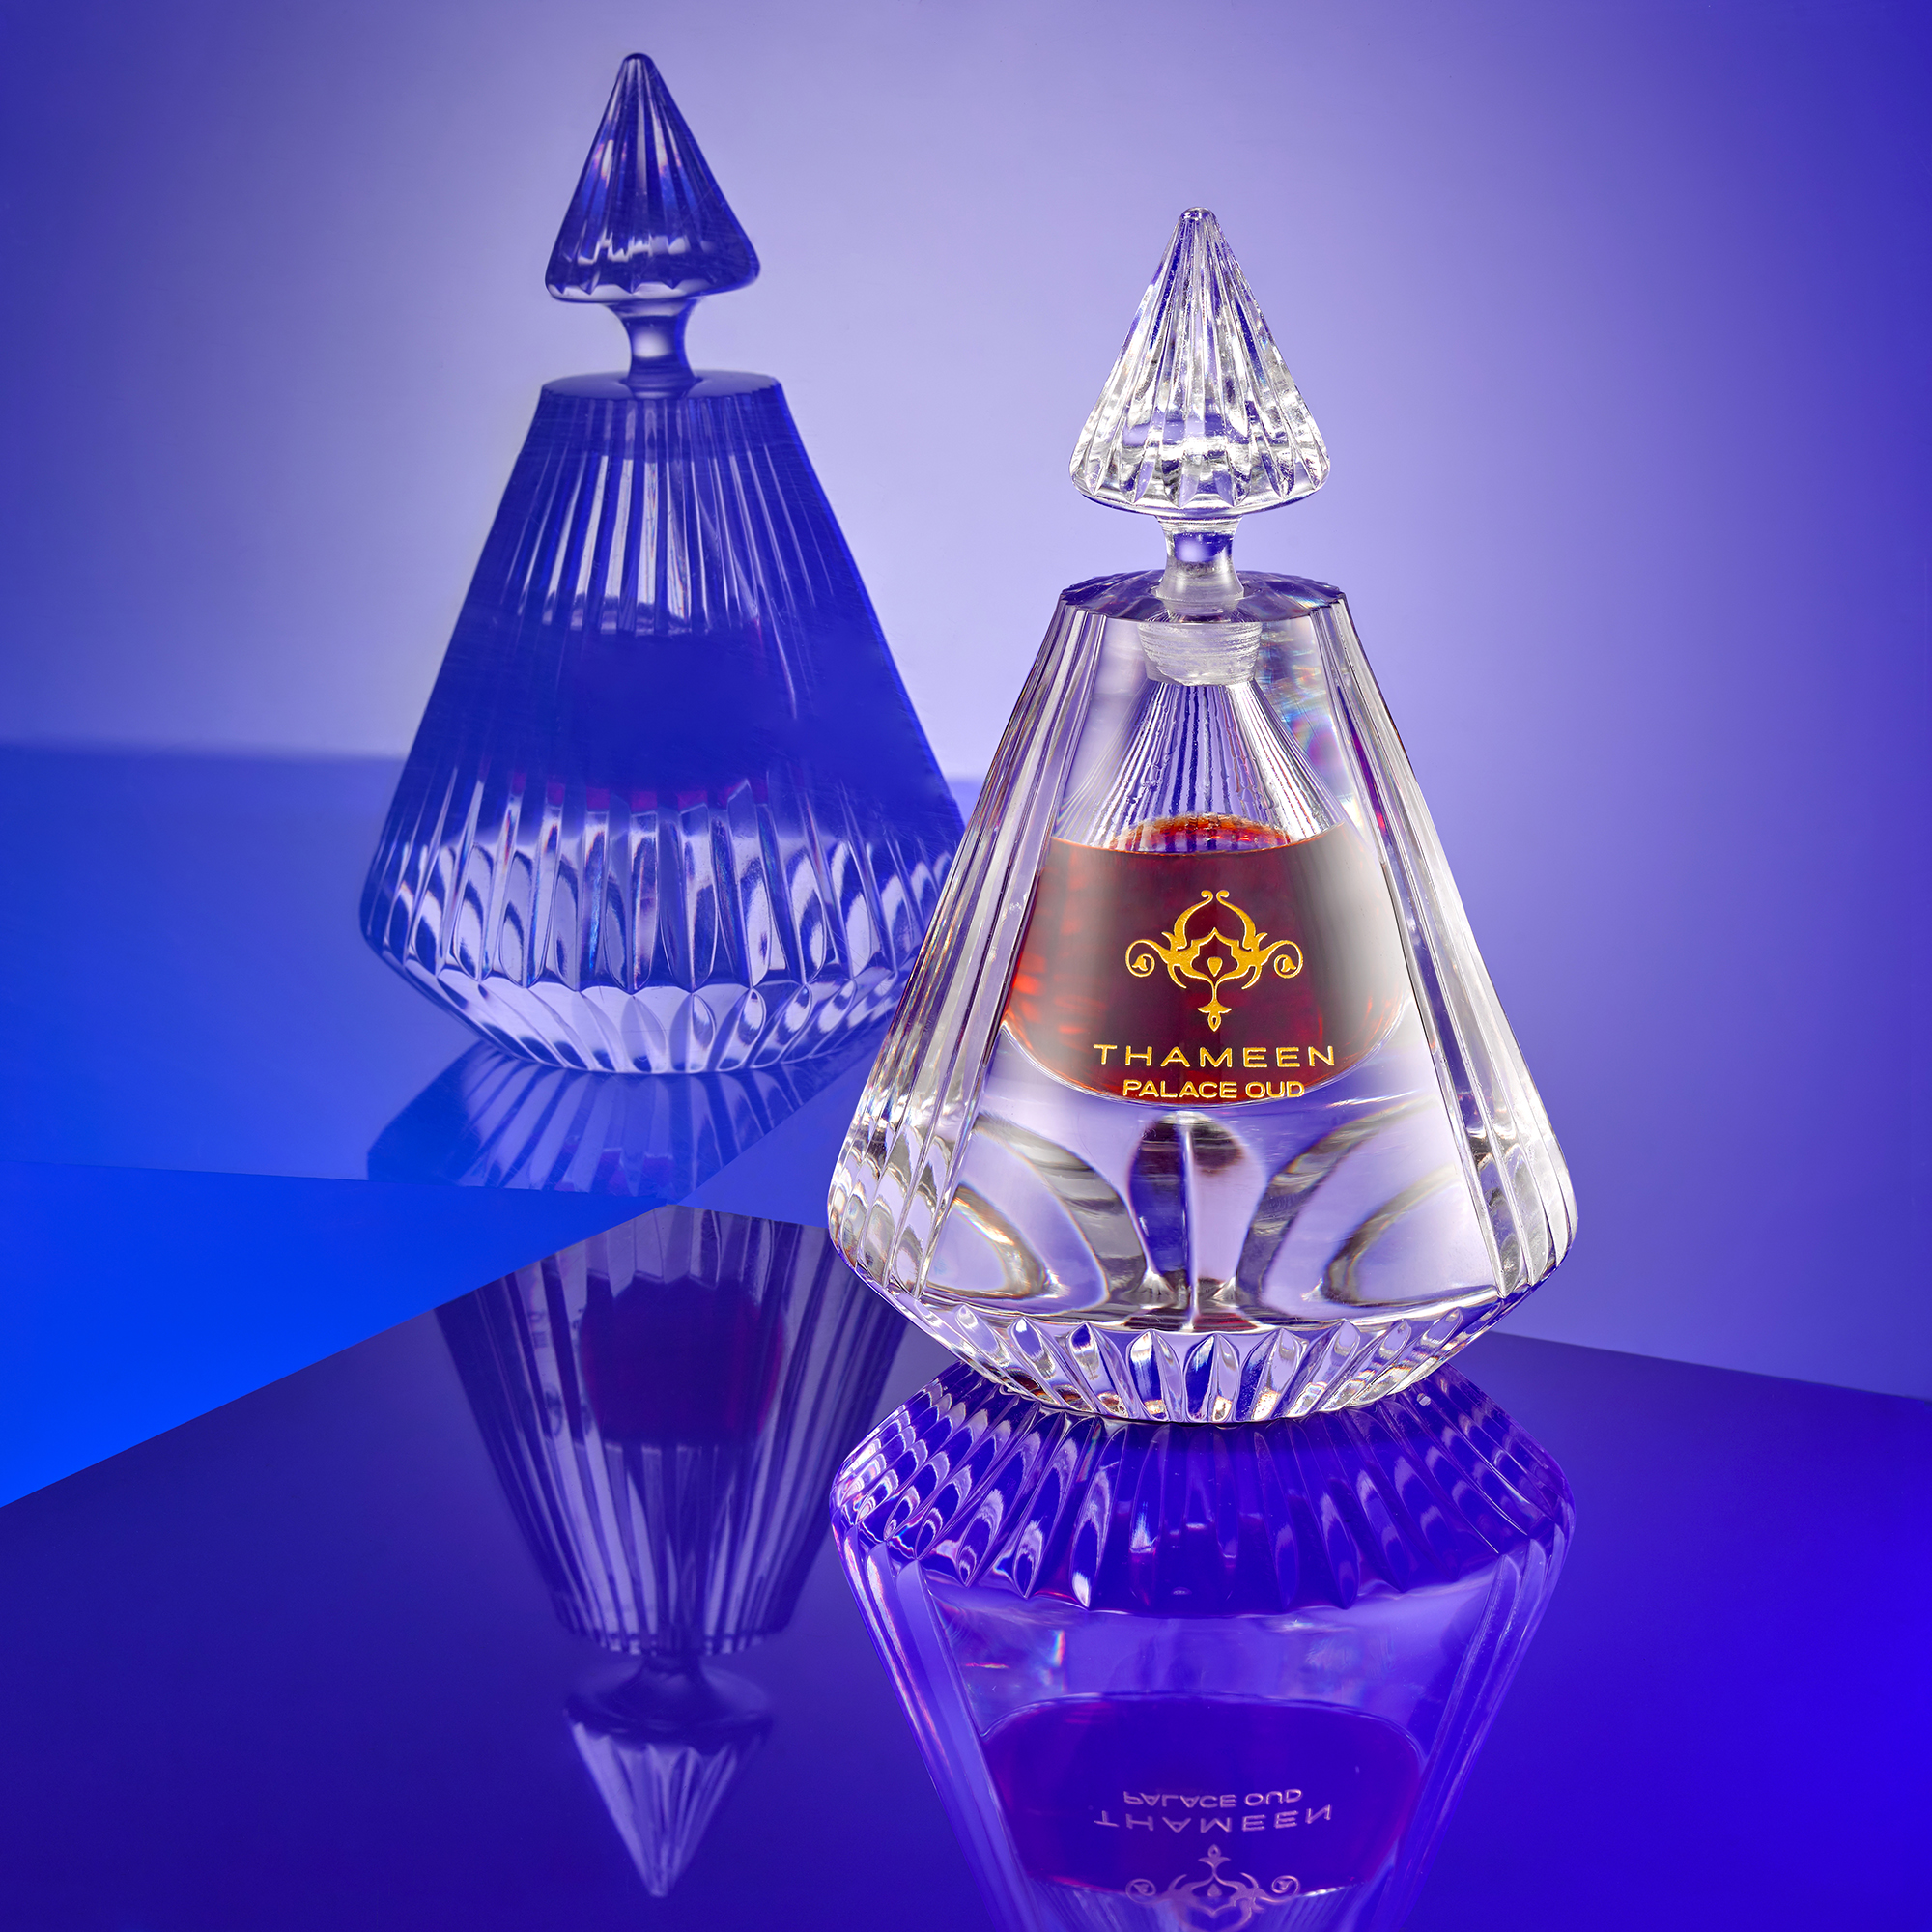 perfumes and cosmetic still life photographer Chris Howlett. Luxury crystal bottle on reflective creative background. Product photography London